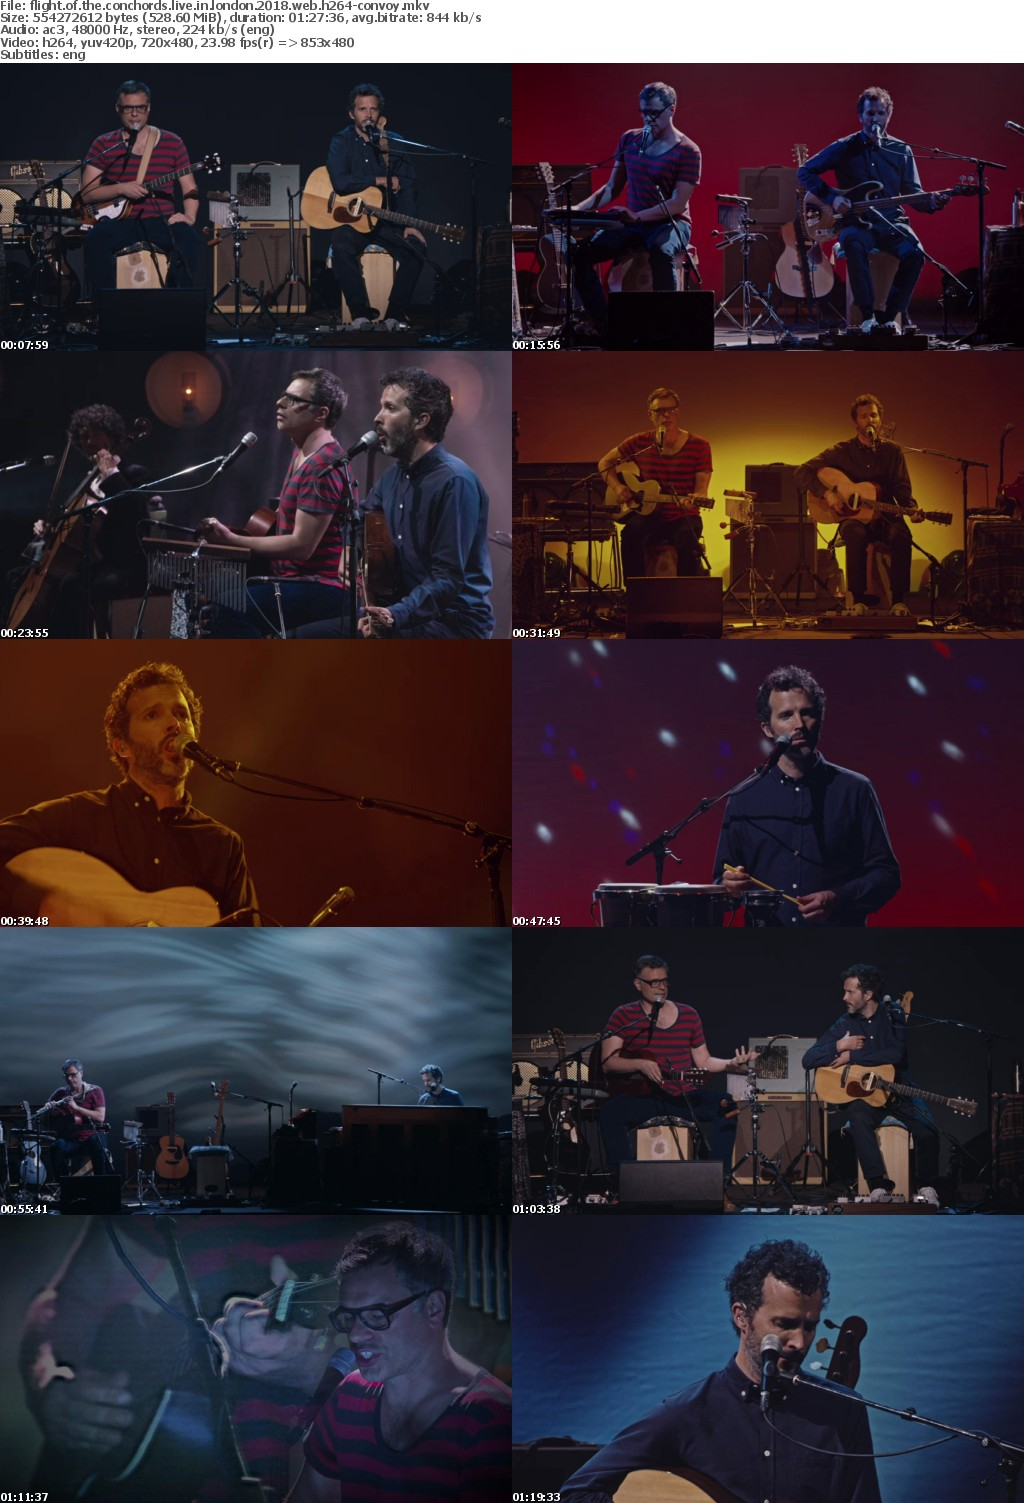 Flight of the Conchords Live in London 2018 WEB h264-CONVOY